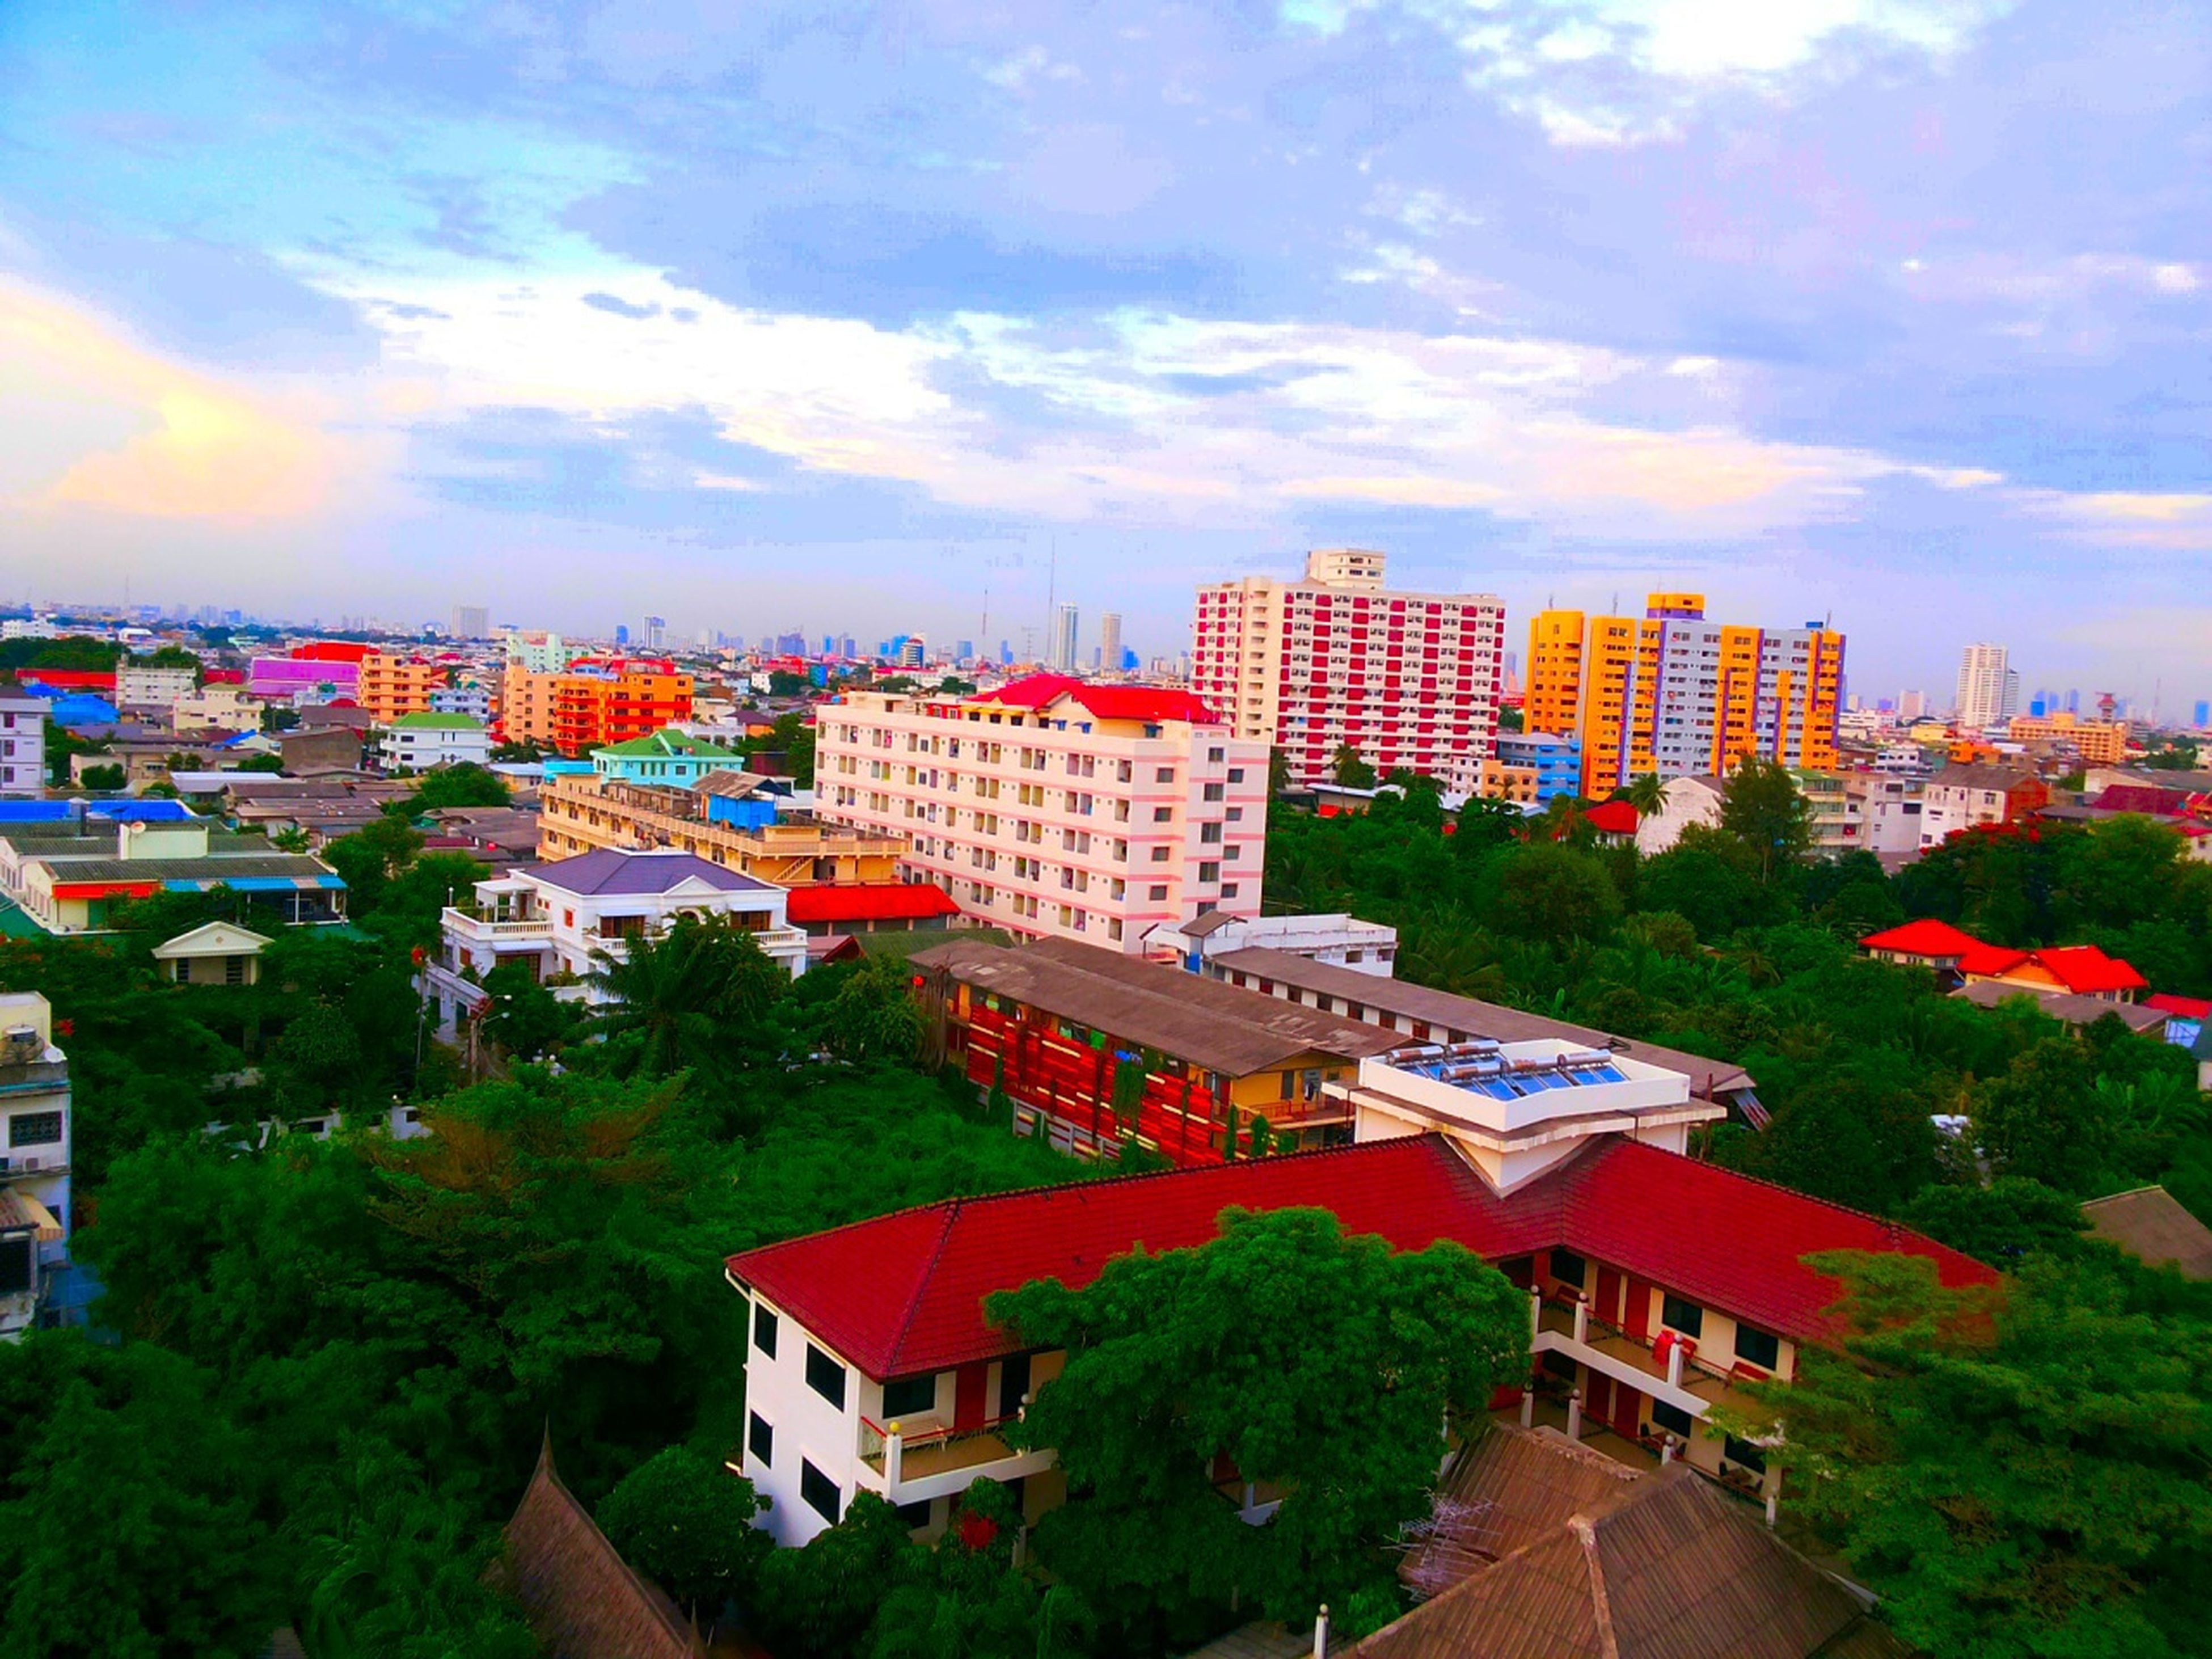 building exterior, architecture, built structure, sky, house, residential building, residential structure, residential district, high angle view, tree, city, roof, cloud - sky, cityscape, town, crowded, townscape, cloud, cloudy, outdoors